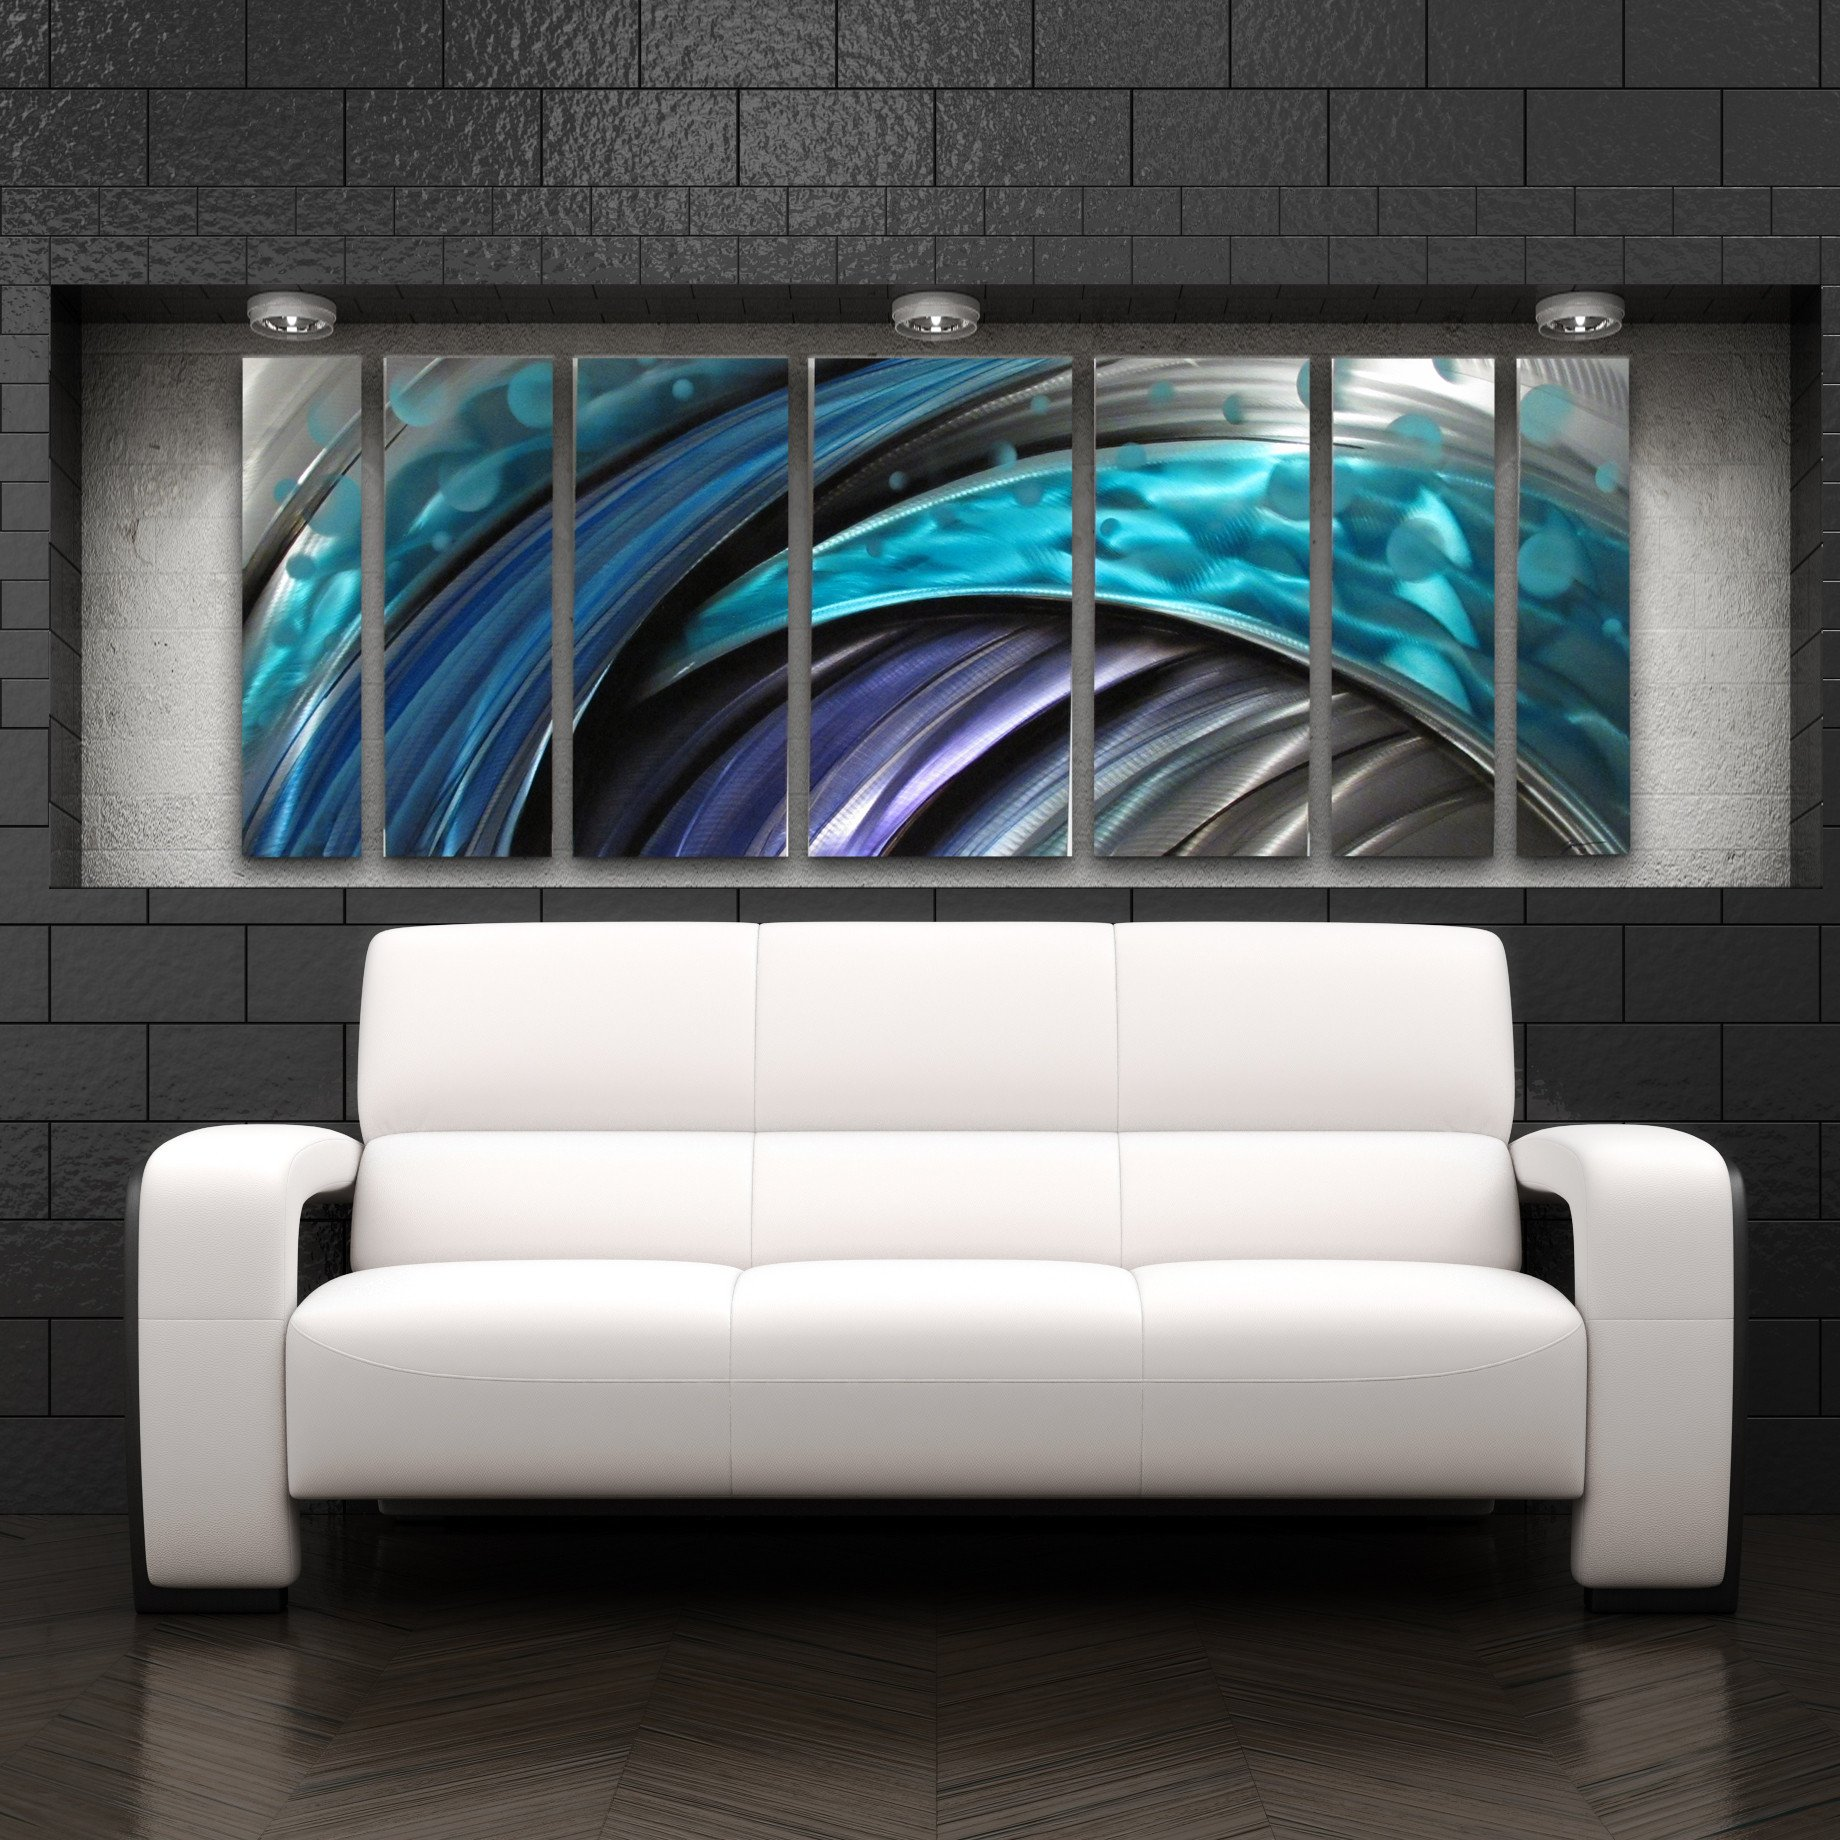 How to select modern wall art for your house?